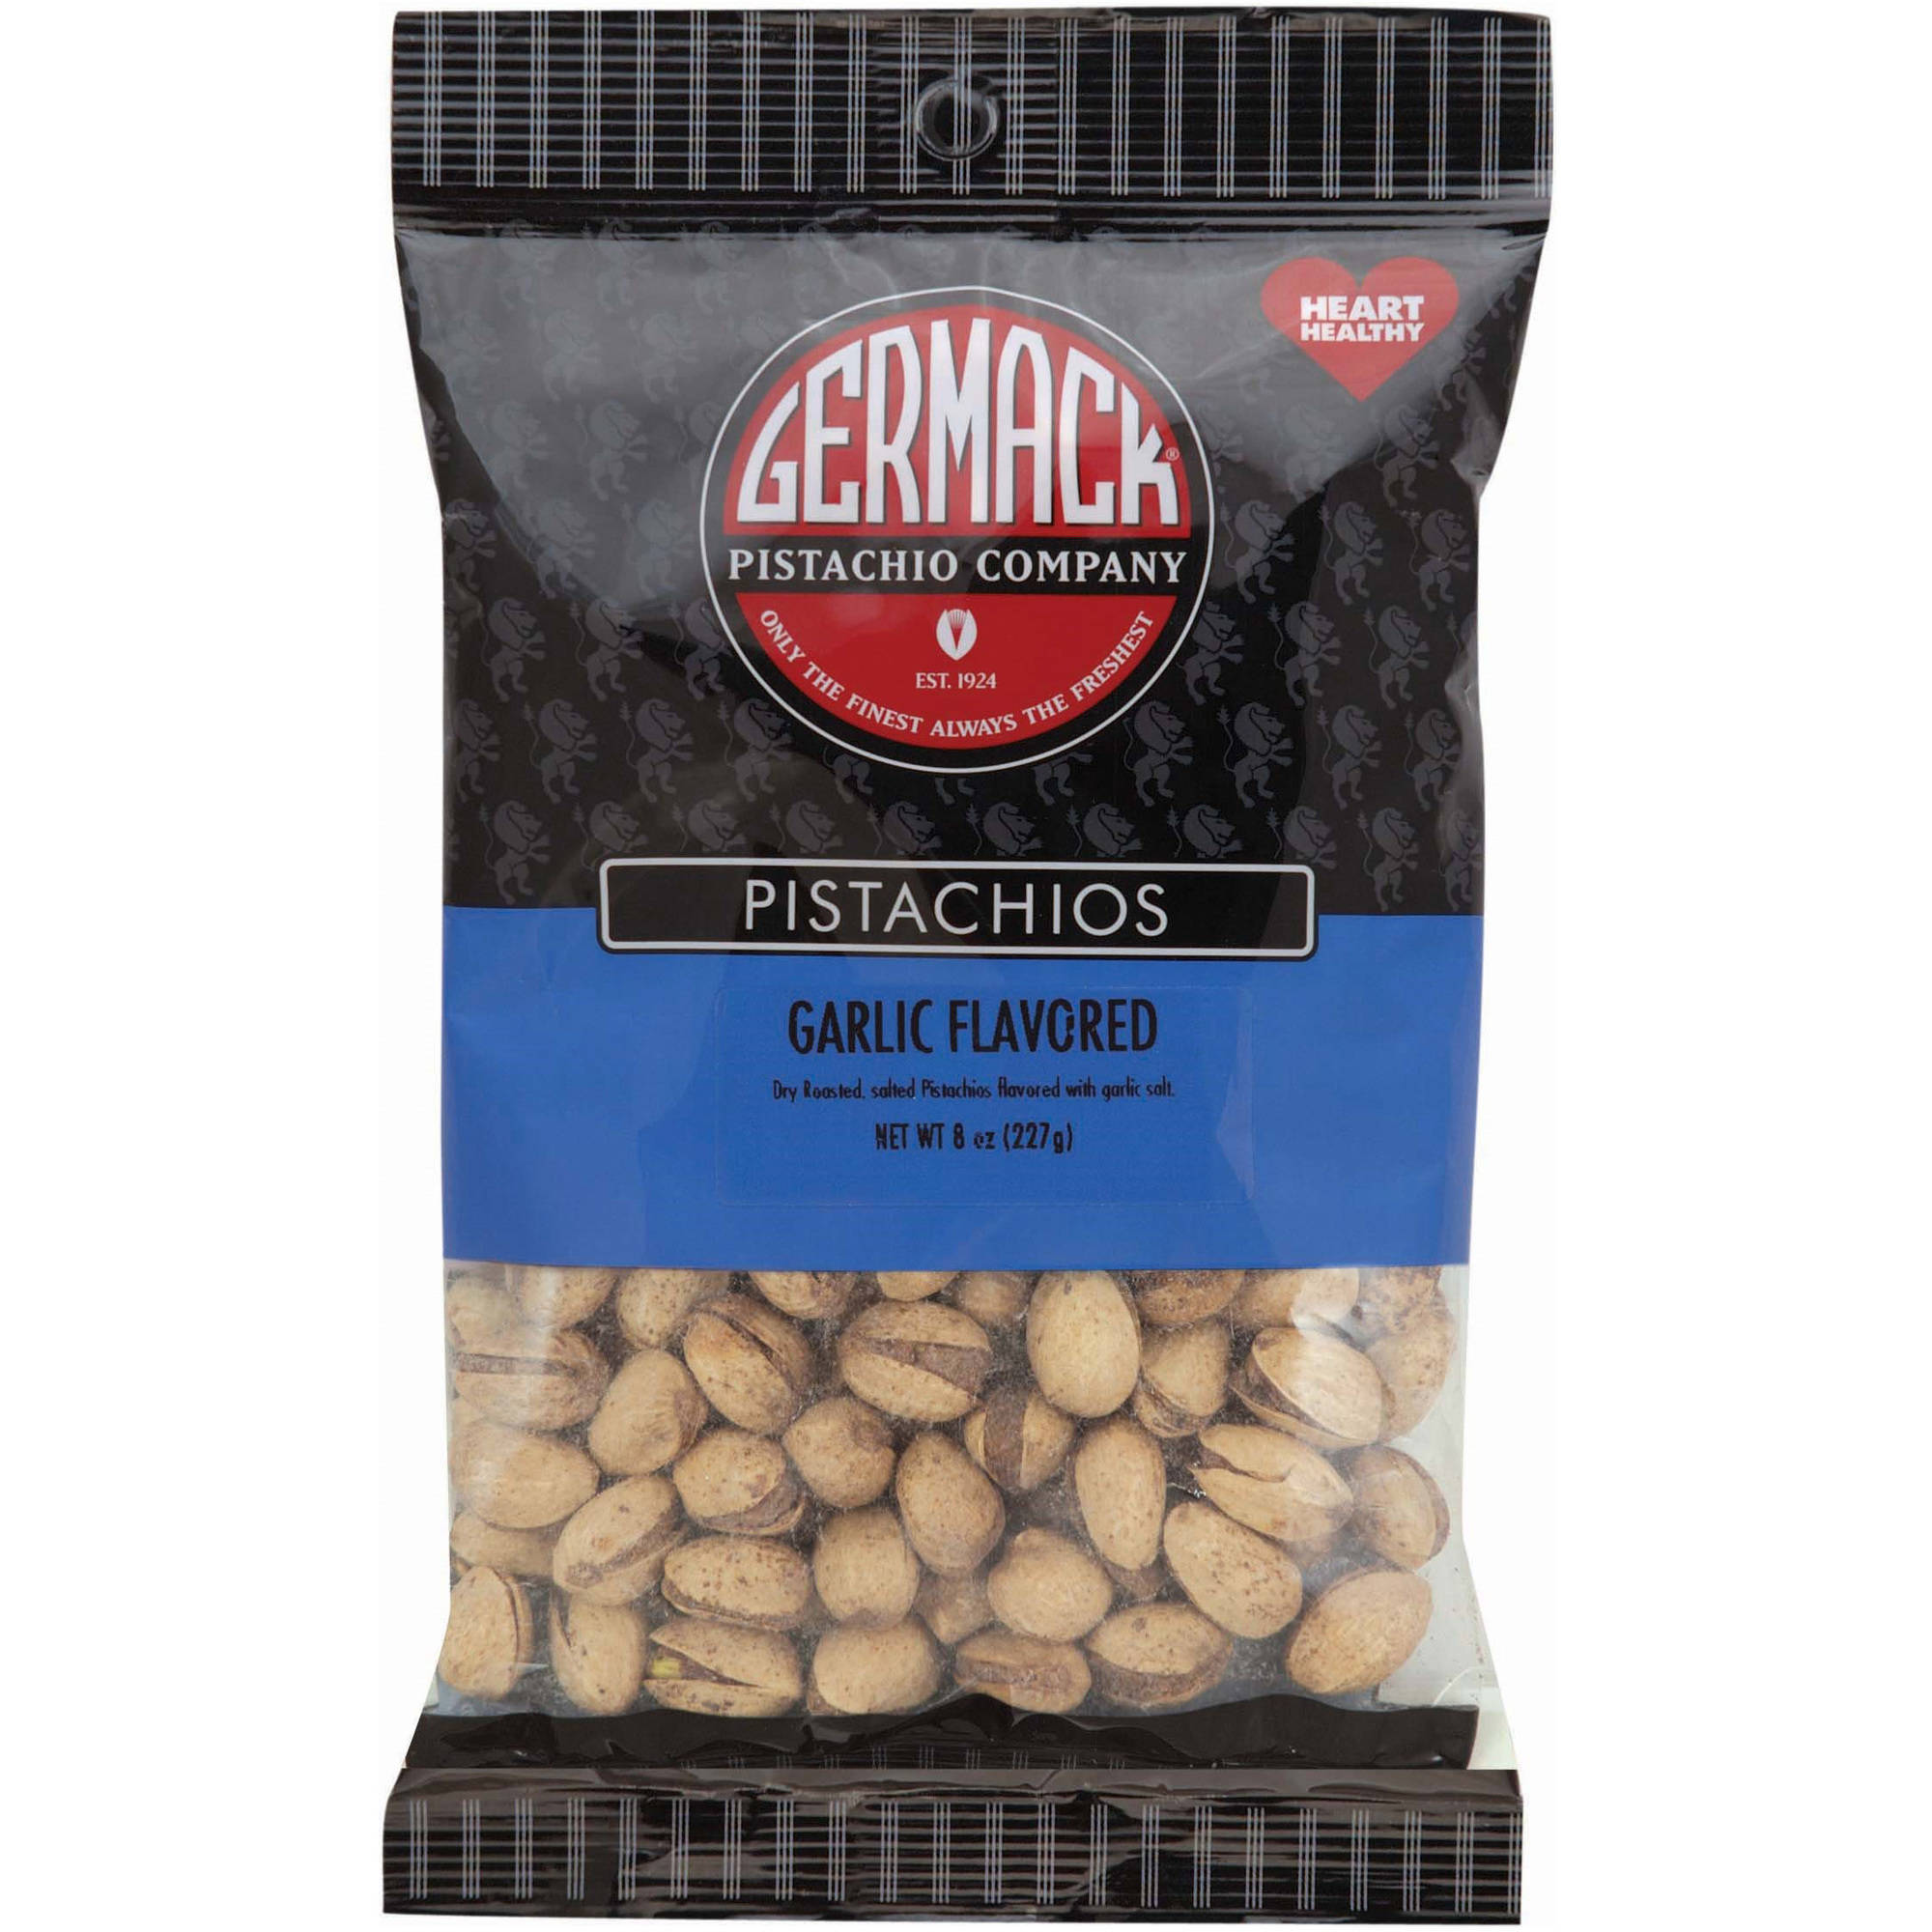 Germack Pistachio Company Garlic Flavored Pistachios, 8 oz by GERMACK